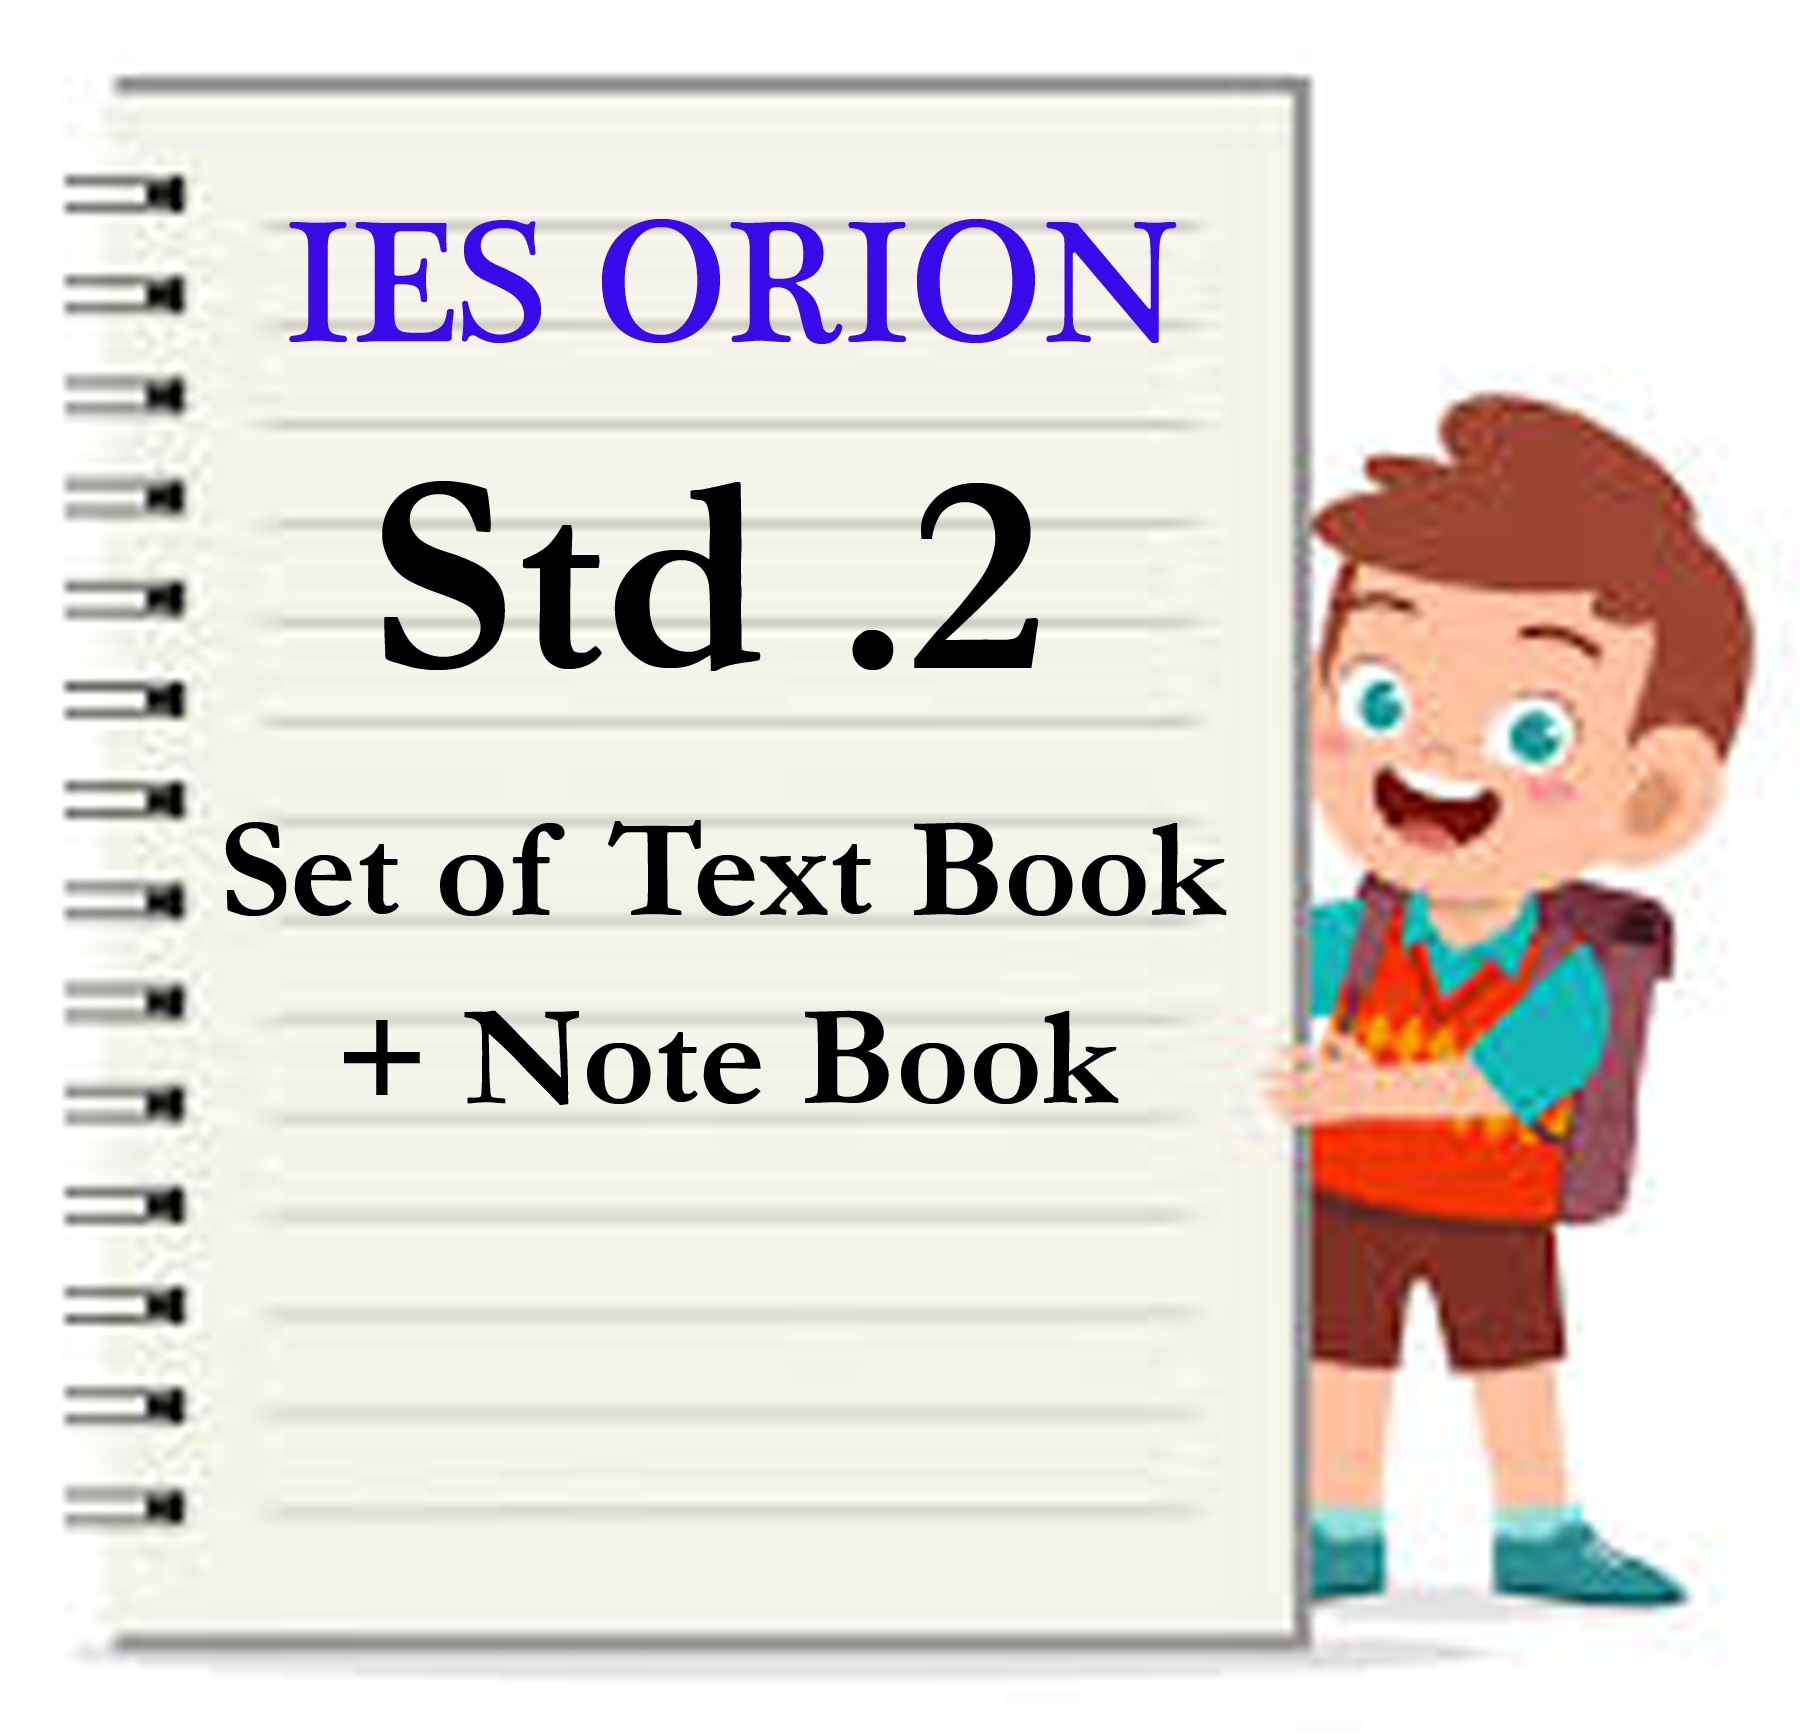 IES ORION STD.2 SET OF TEXT BOOK + NOTE BOOK